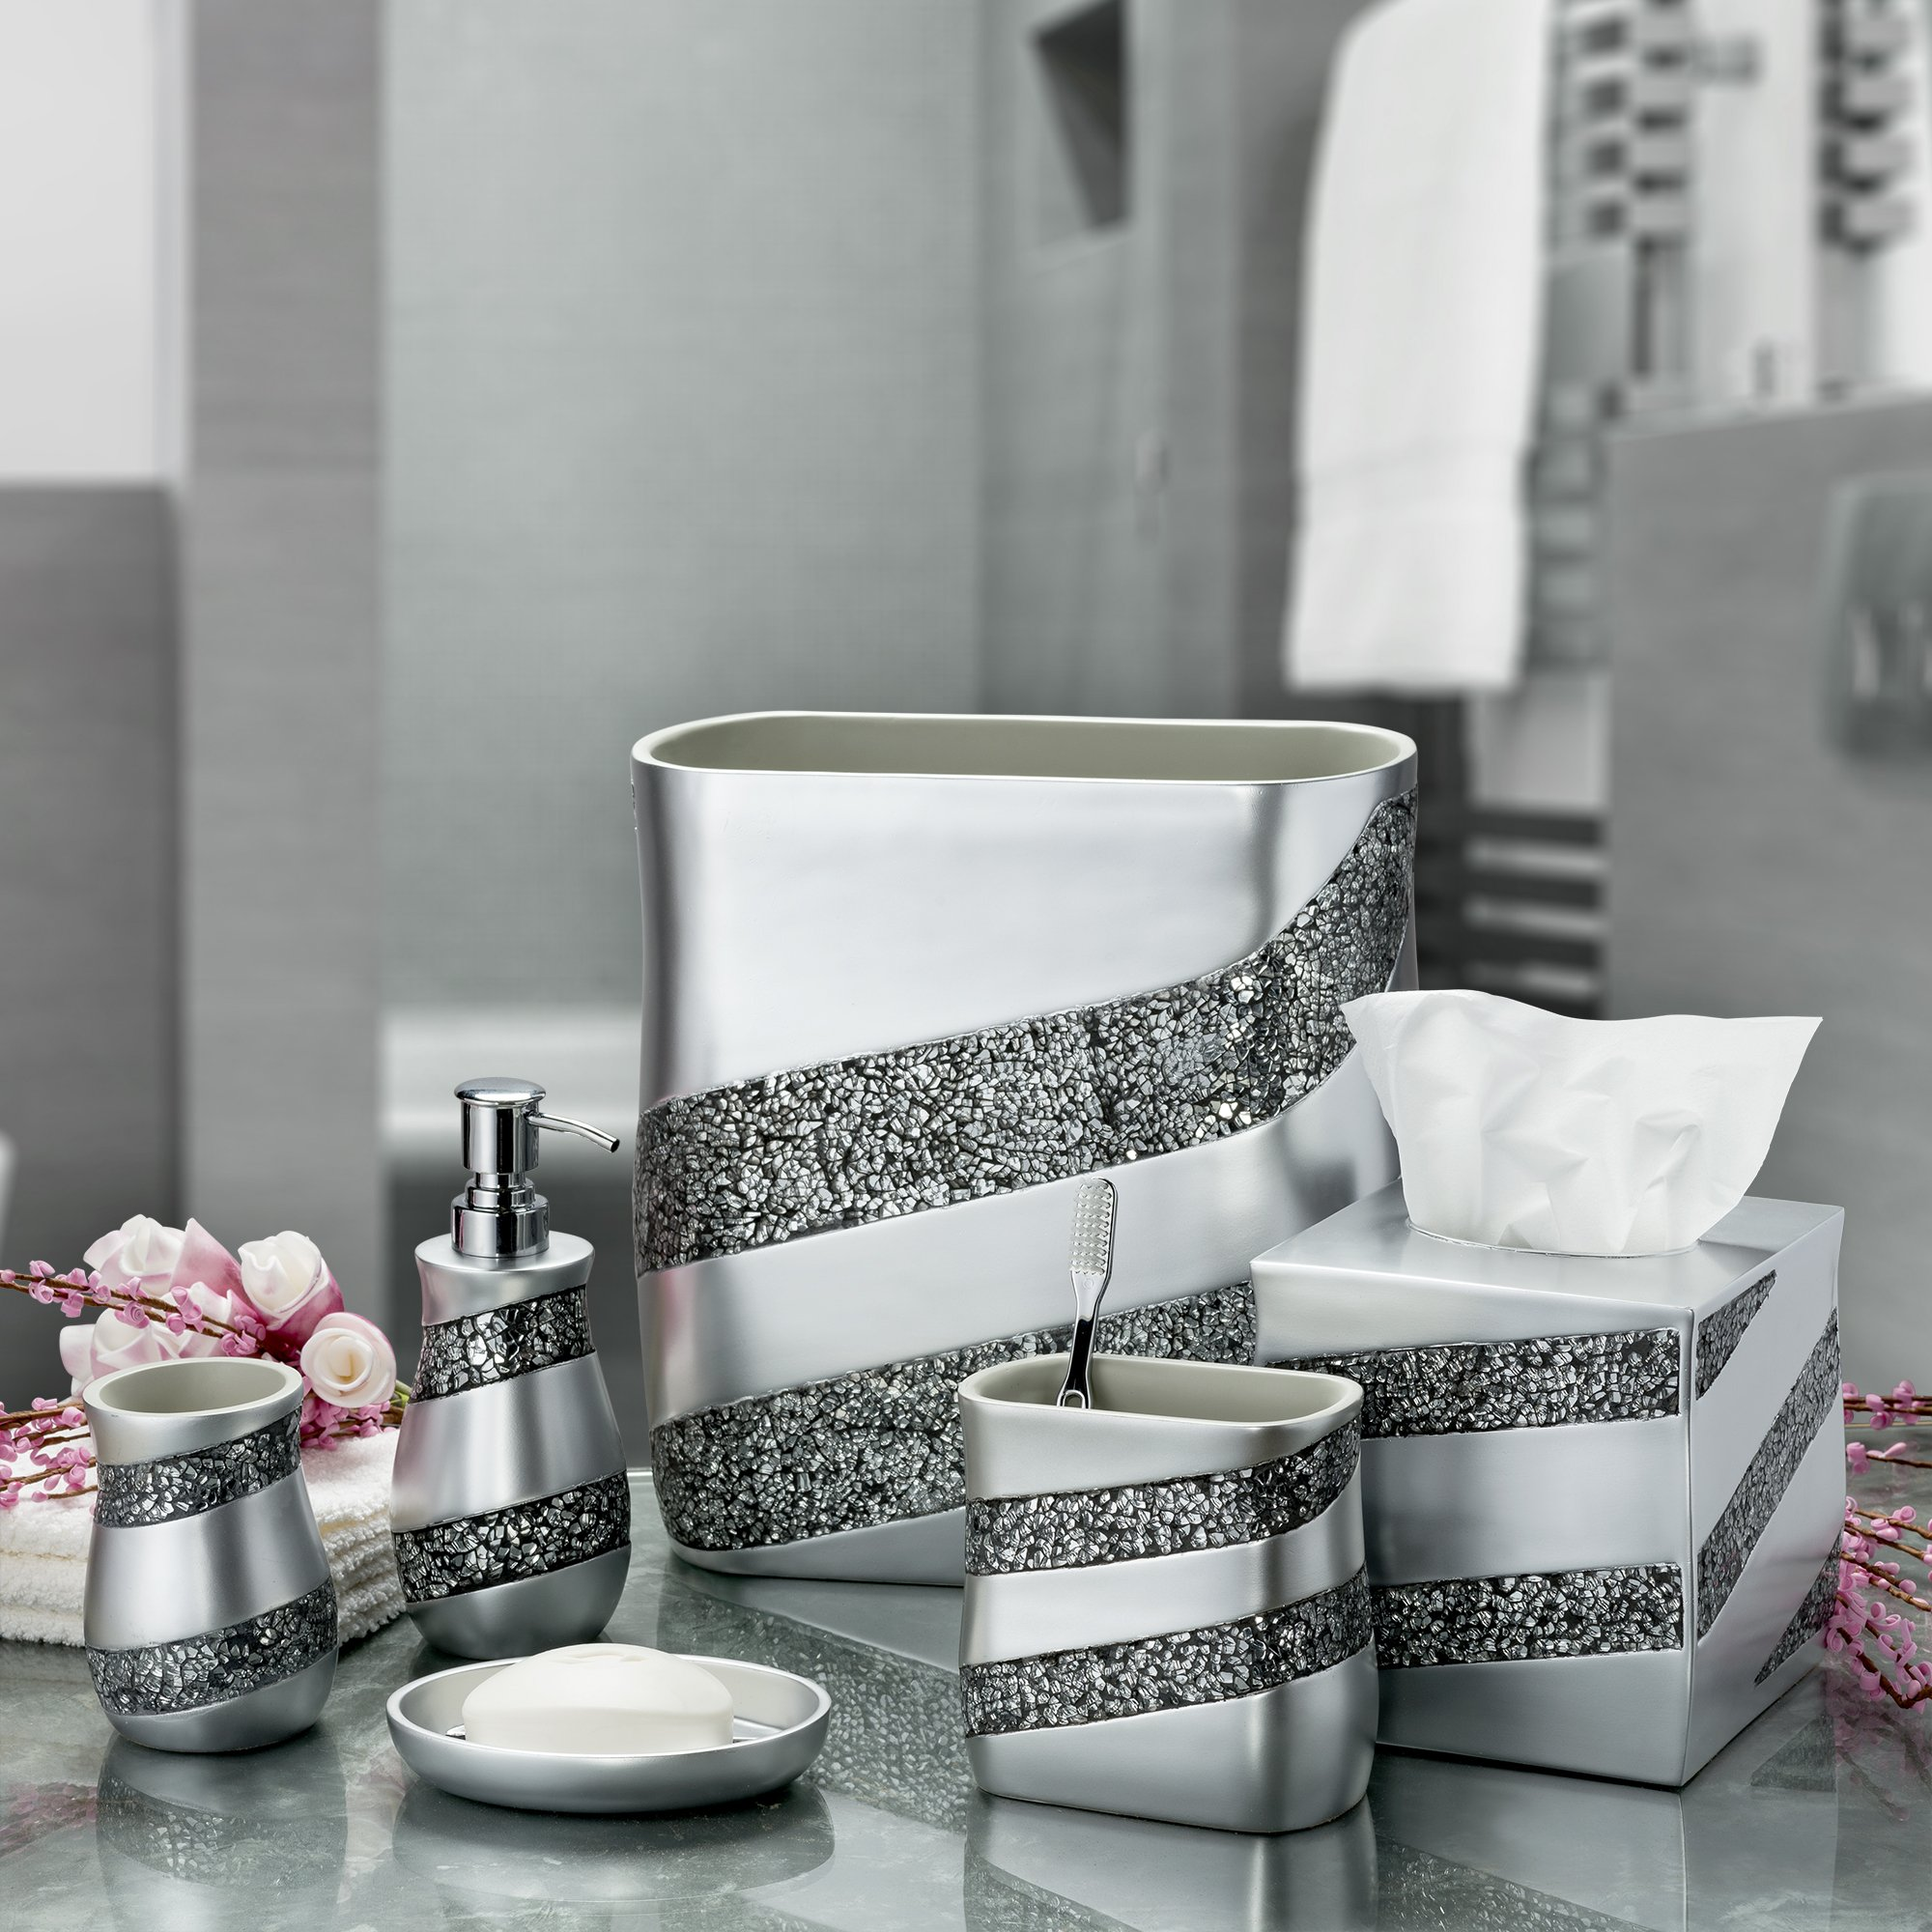 Shower Bathroom Sets: Dwellza Silver Mosaic Bathroom Accessories Set, 6 Piece